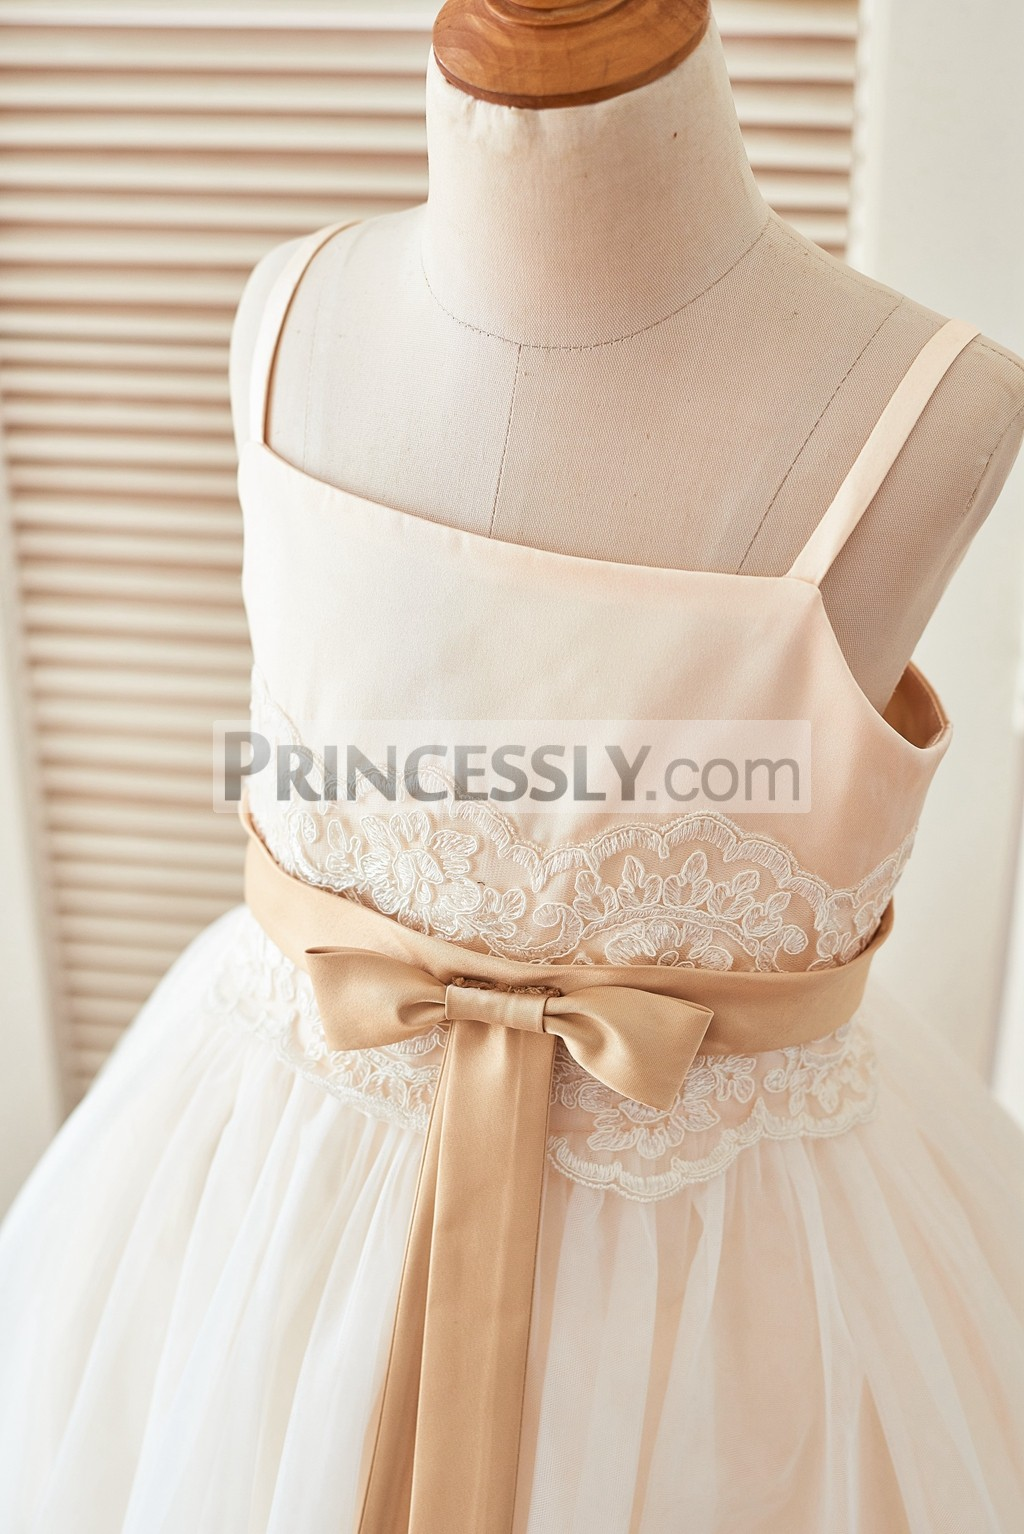 Satin bodice with lace and champagne belt and bow